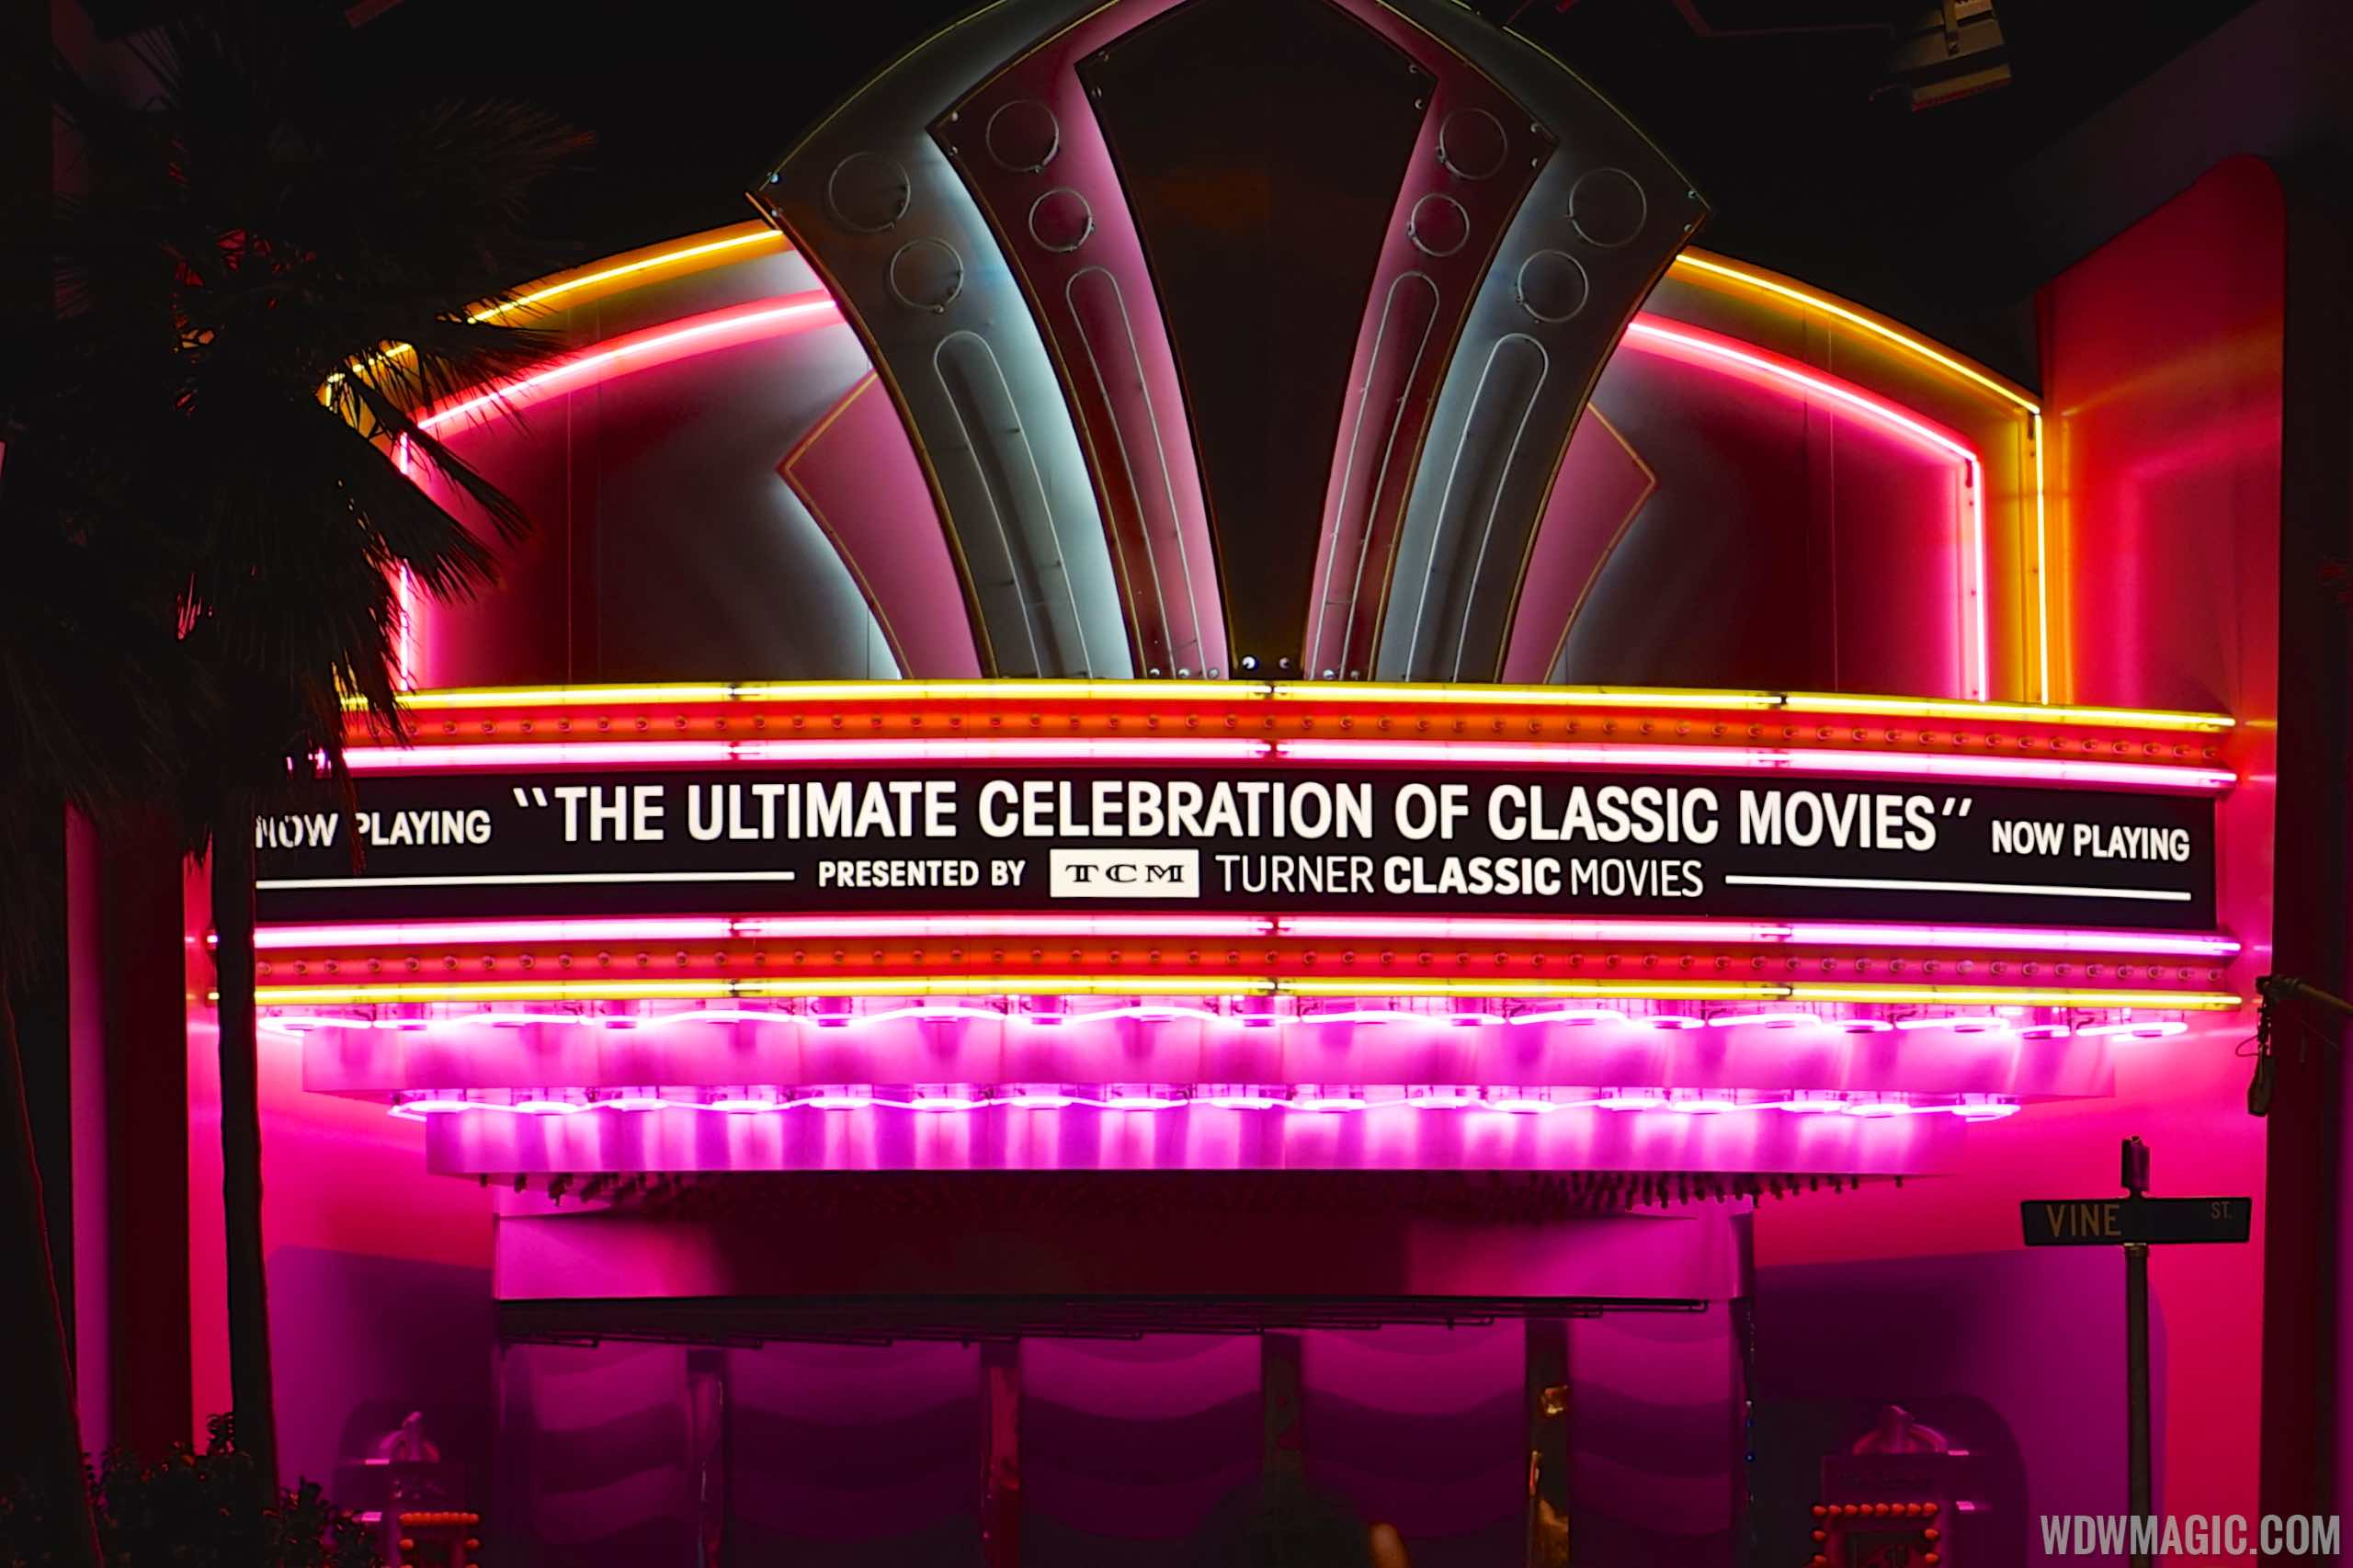 The Great Movie Ride TCM updates - New TCM signage at the start of the ride